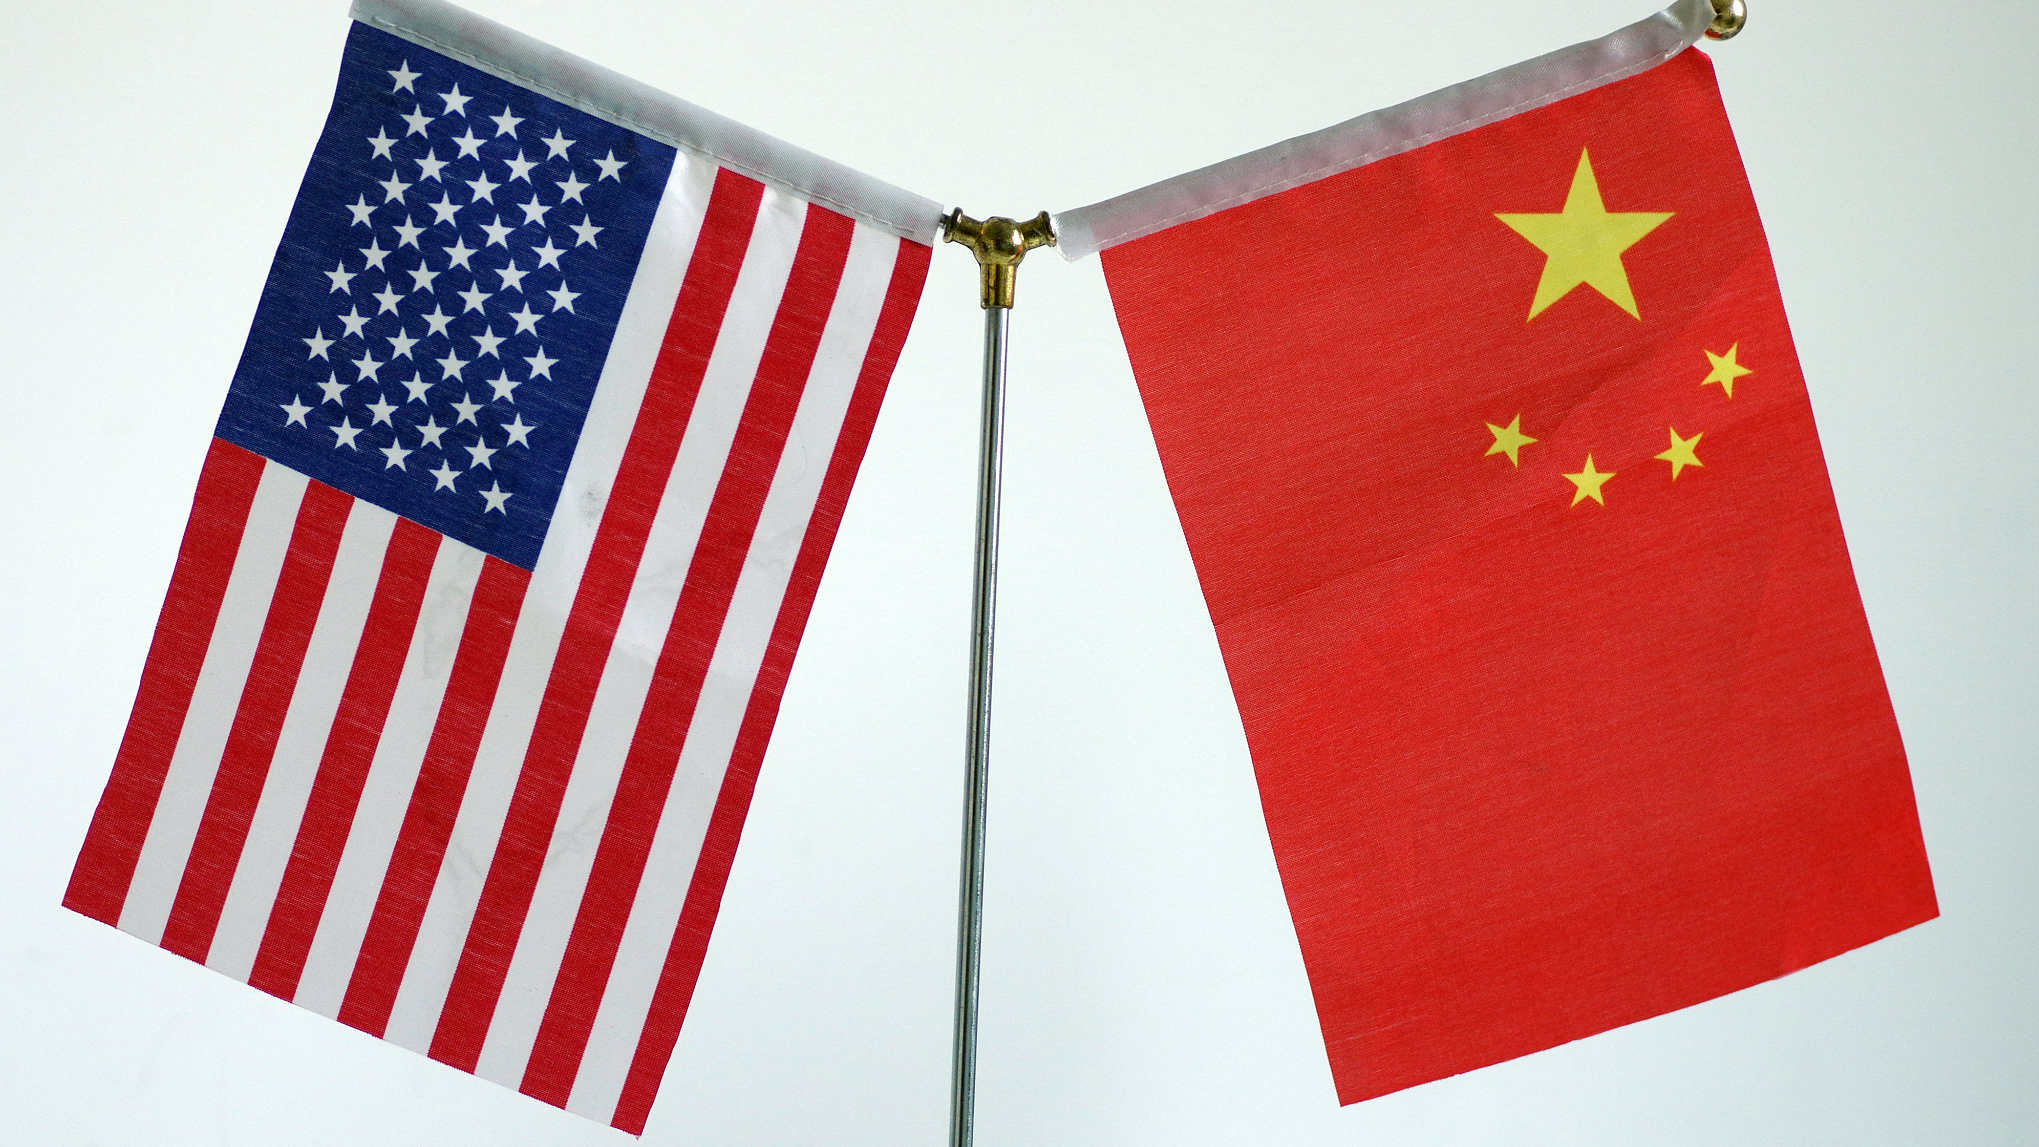 Foreign political parties express opposition to US politicians' smear against China